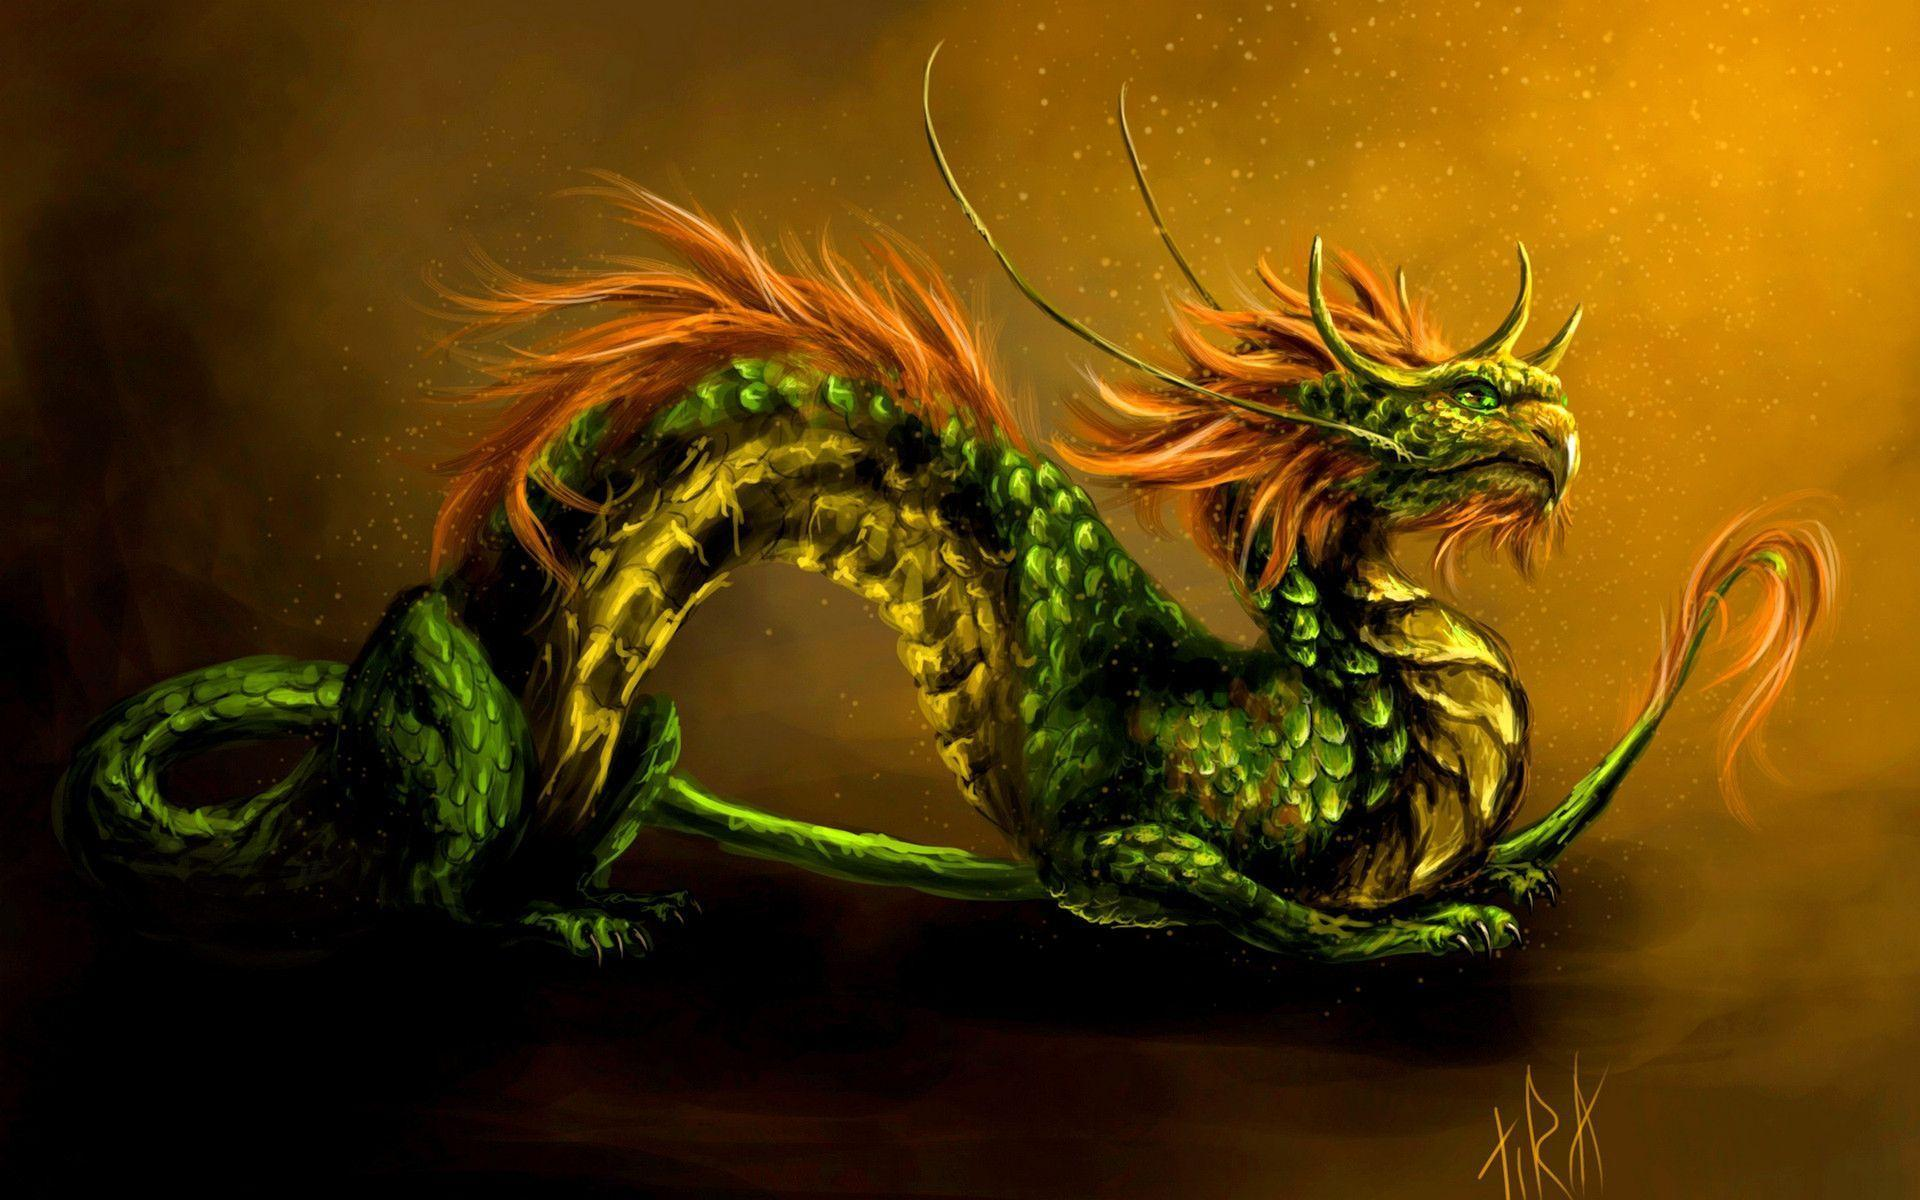 Green Dragon Backgrounds, wallpaper, Green Dragon Backgrounds hd